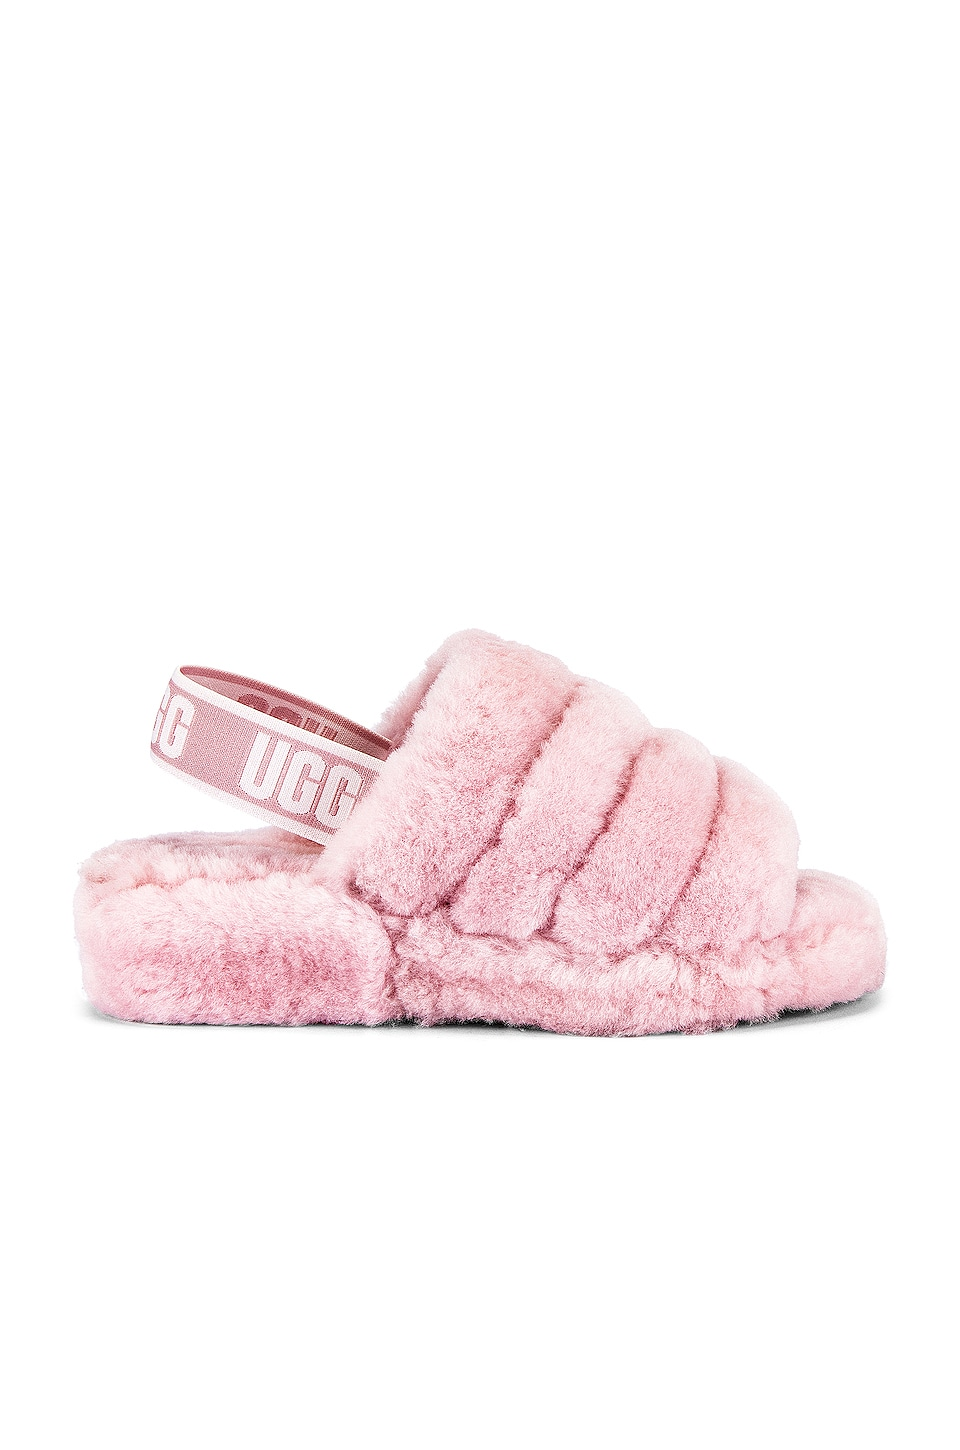 UGG Fluff Yeah Fur Slide in Seashell Pink